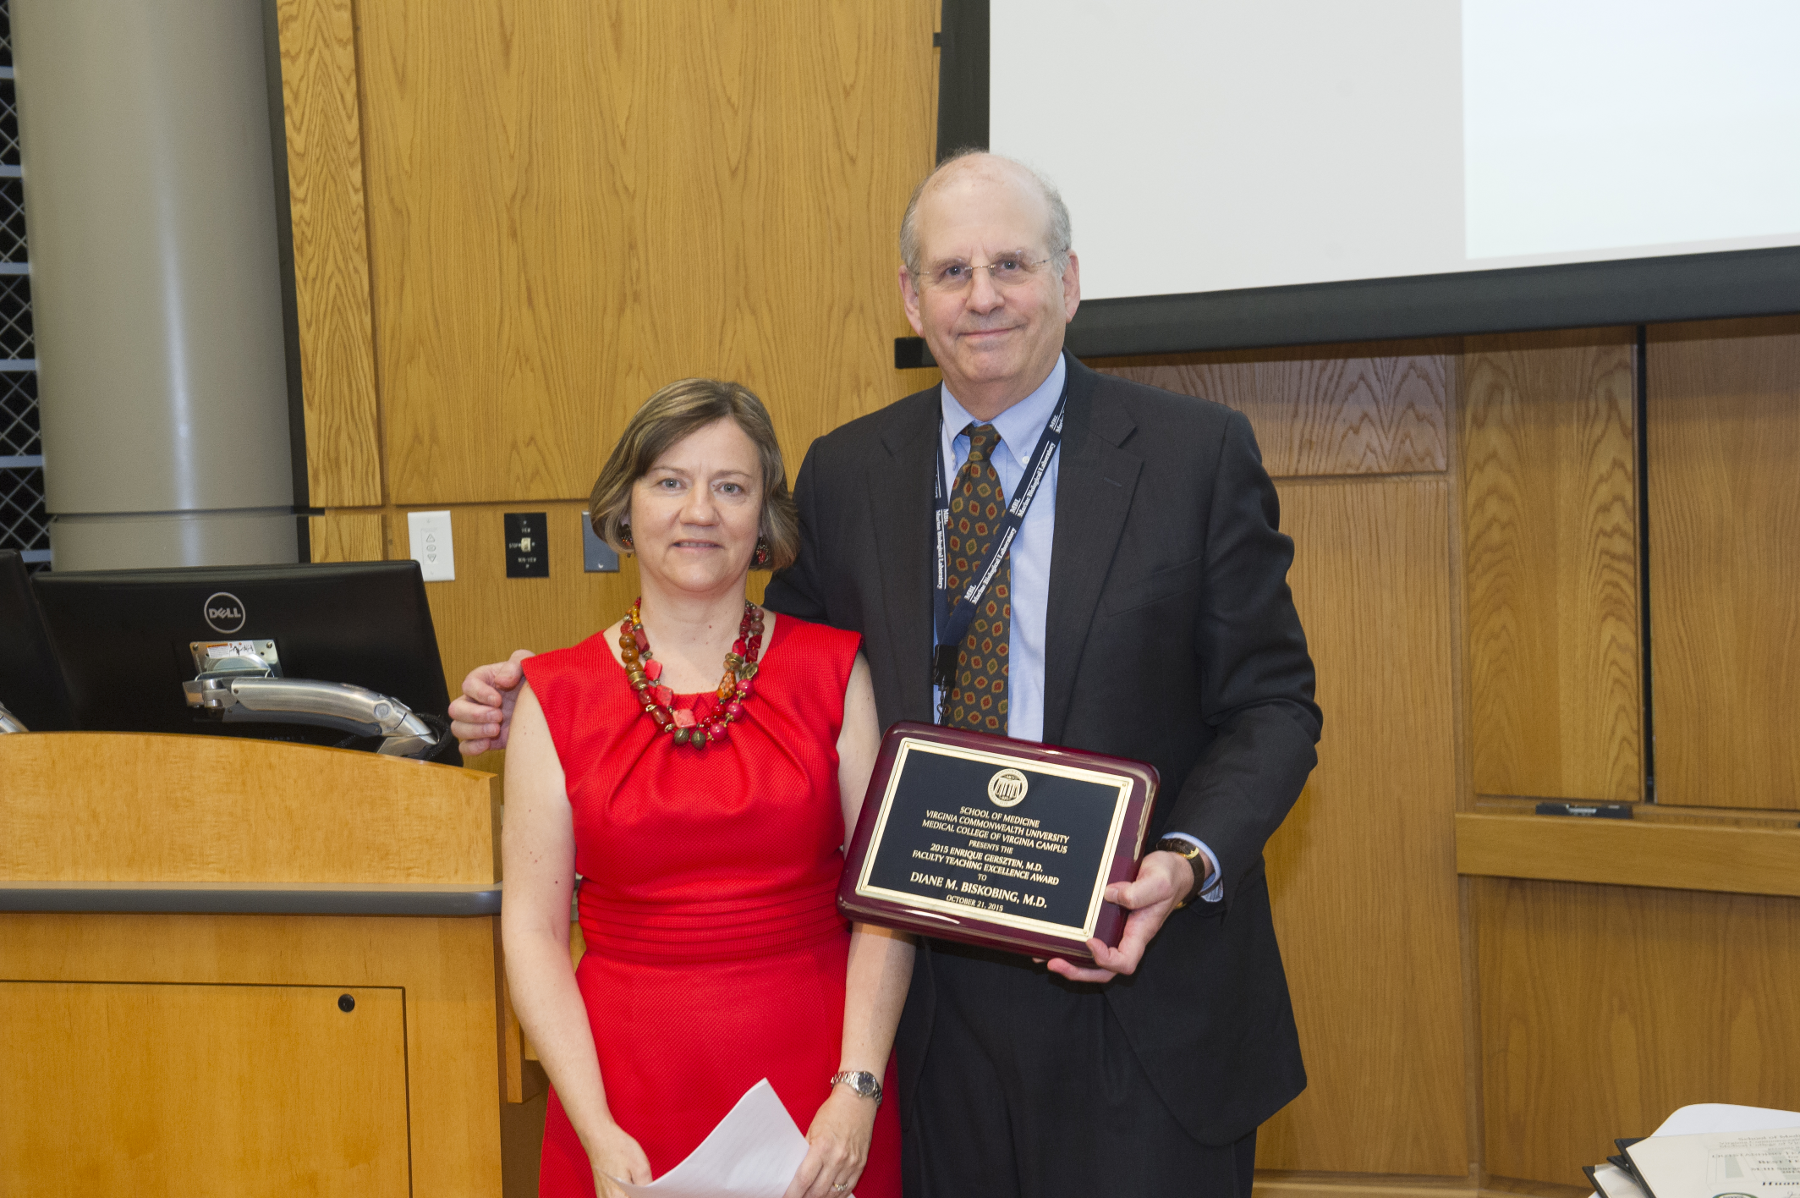 17th annual VCU School of Medicine Faculty Excellence Awards